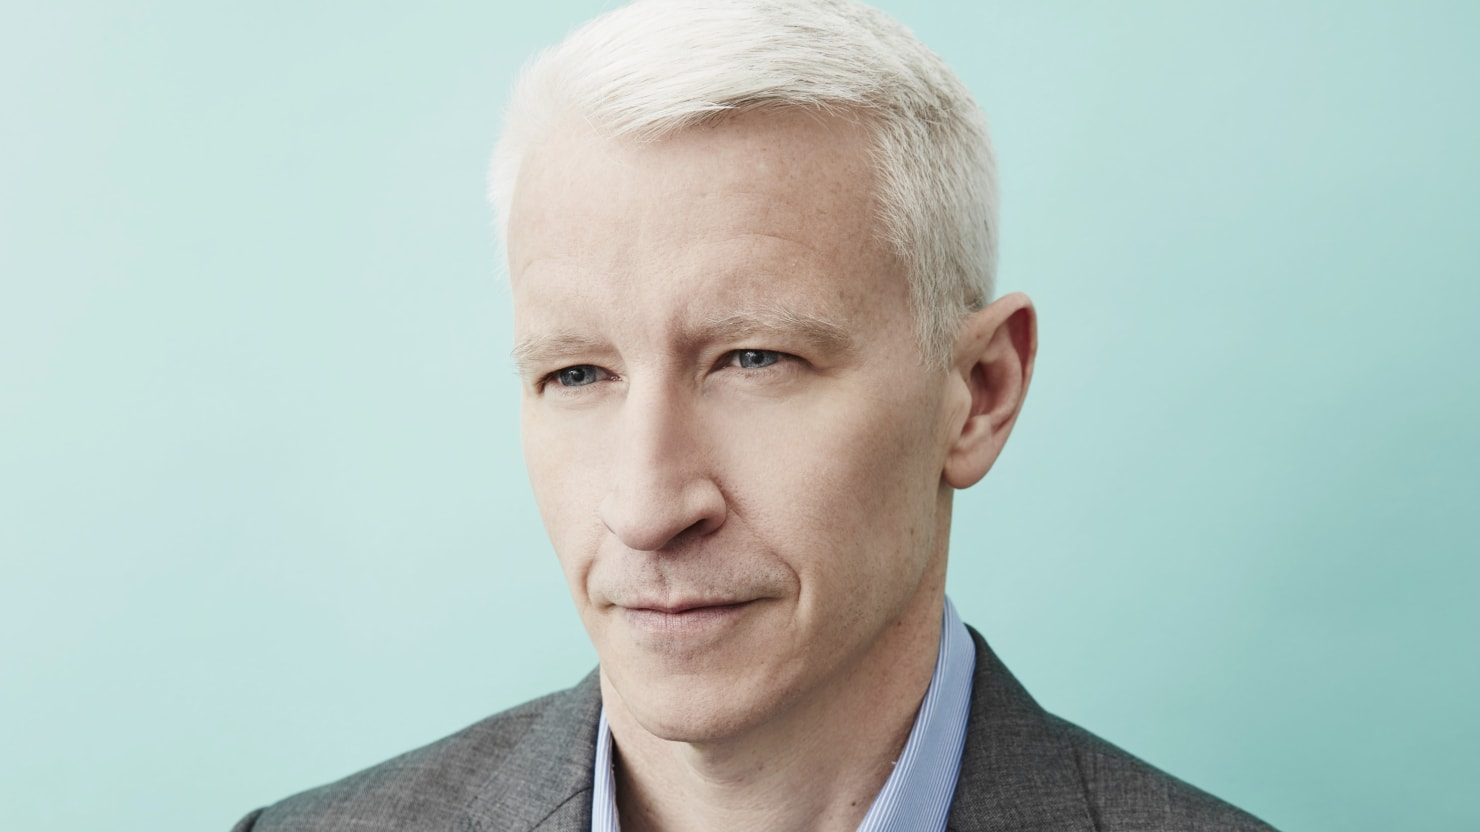 anderson cooper is the anchor we need now